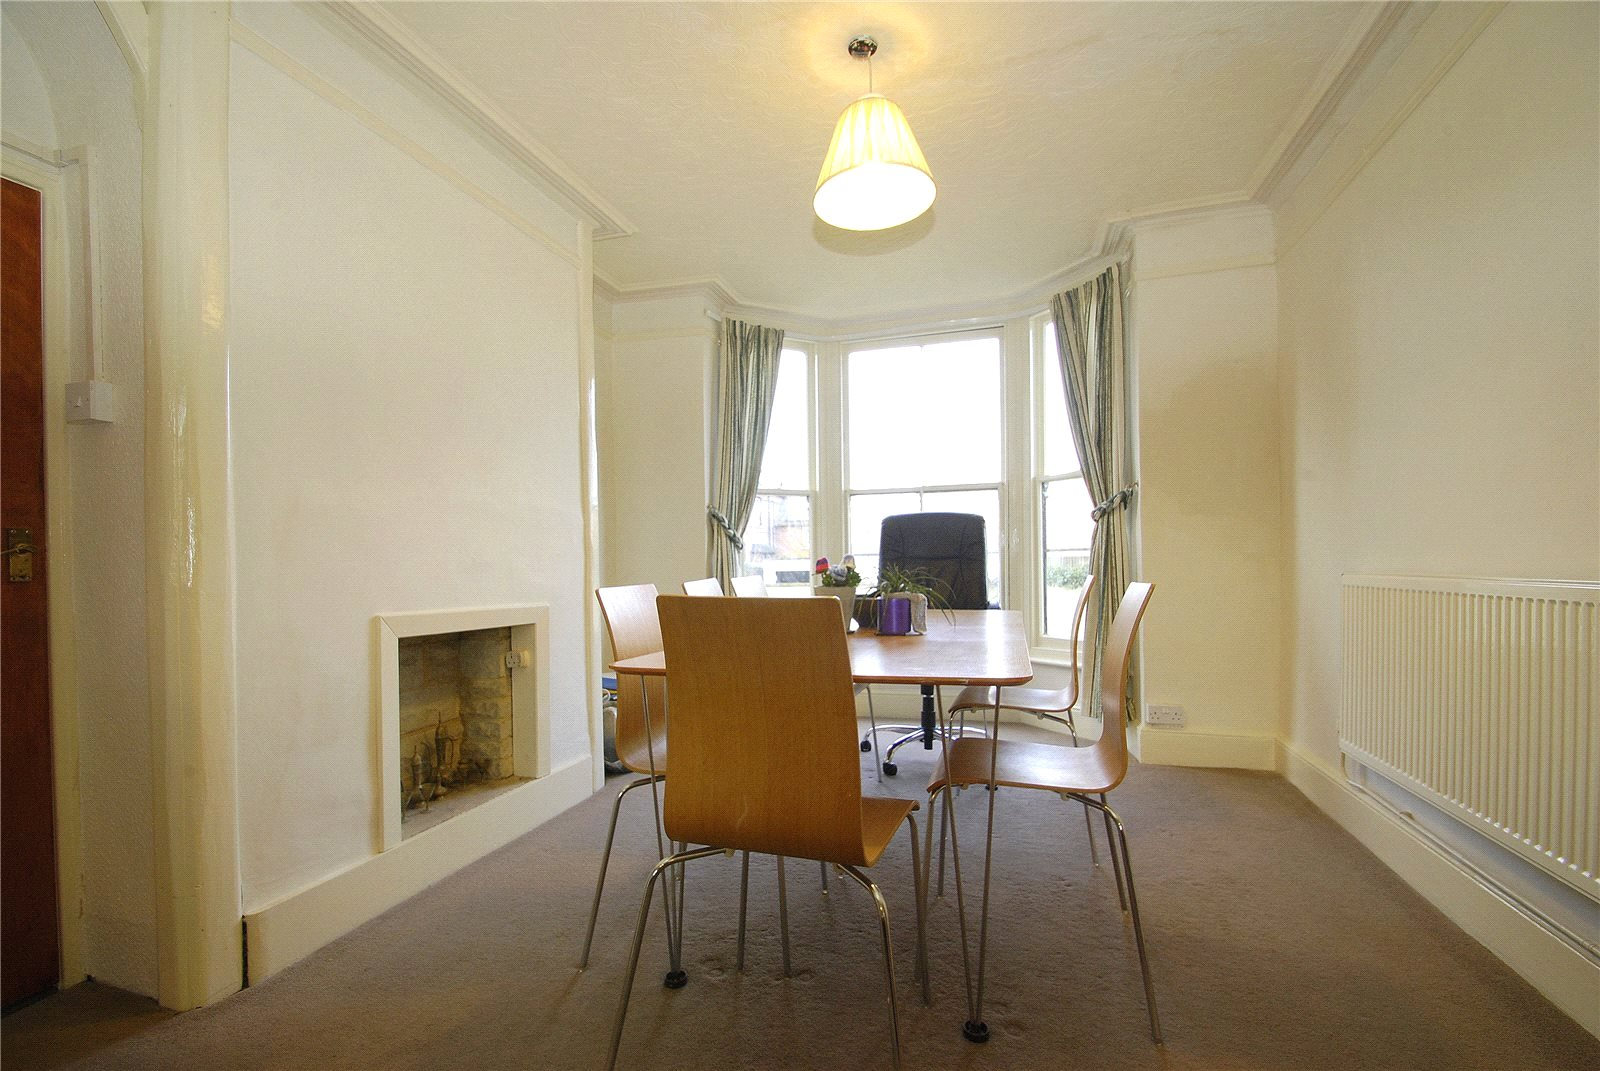 Cj Hole Gloucester 1 Bedroom Flat To Rent In London Road